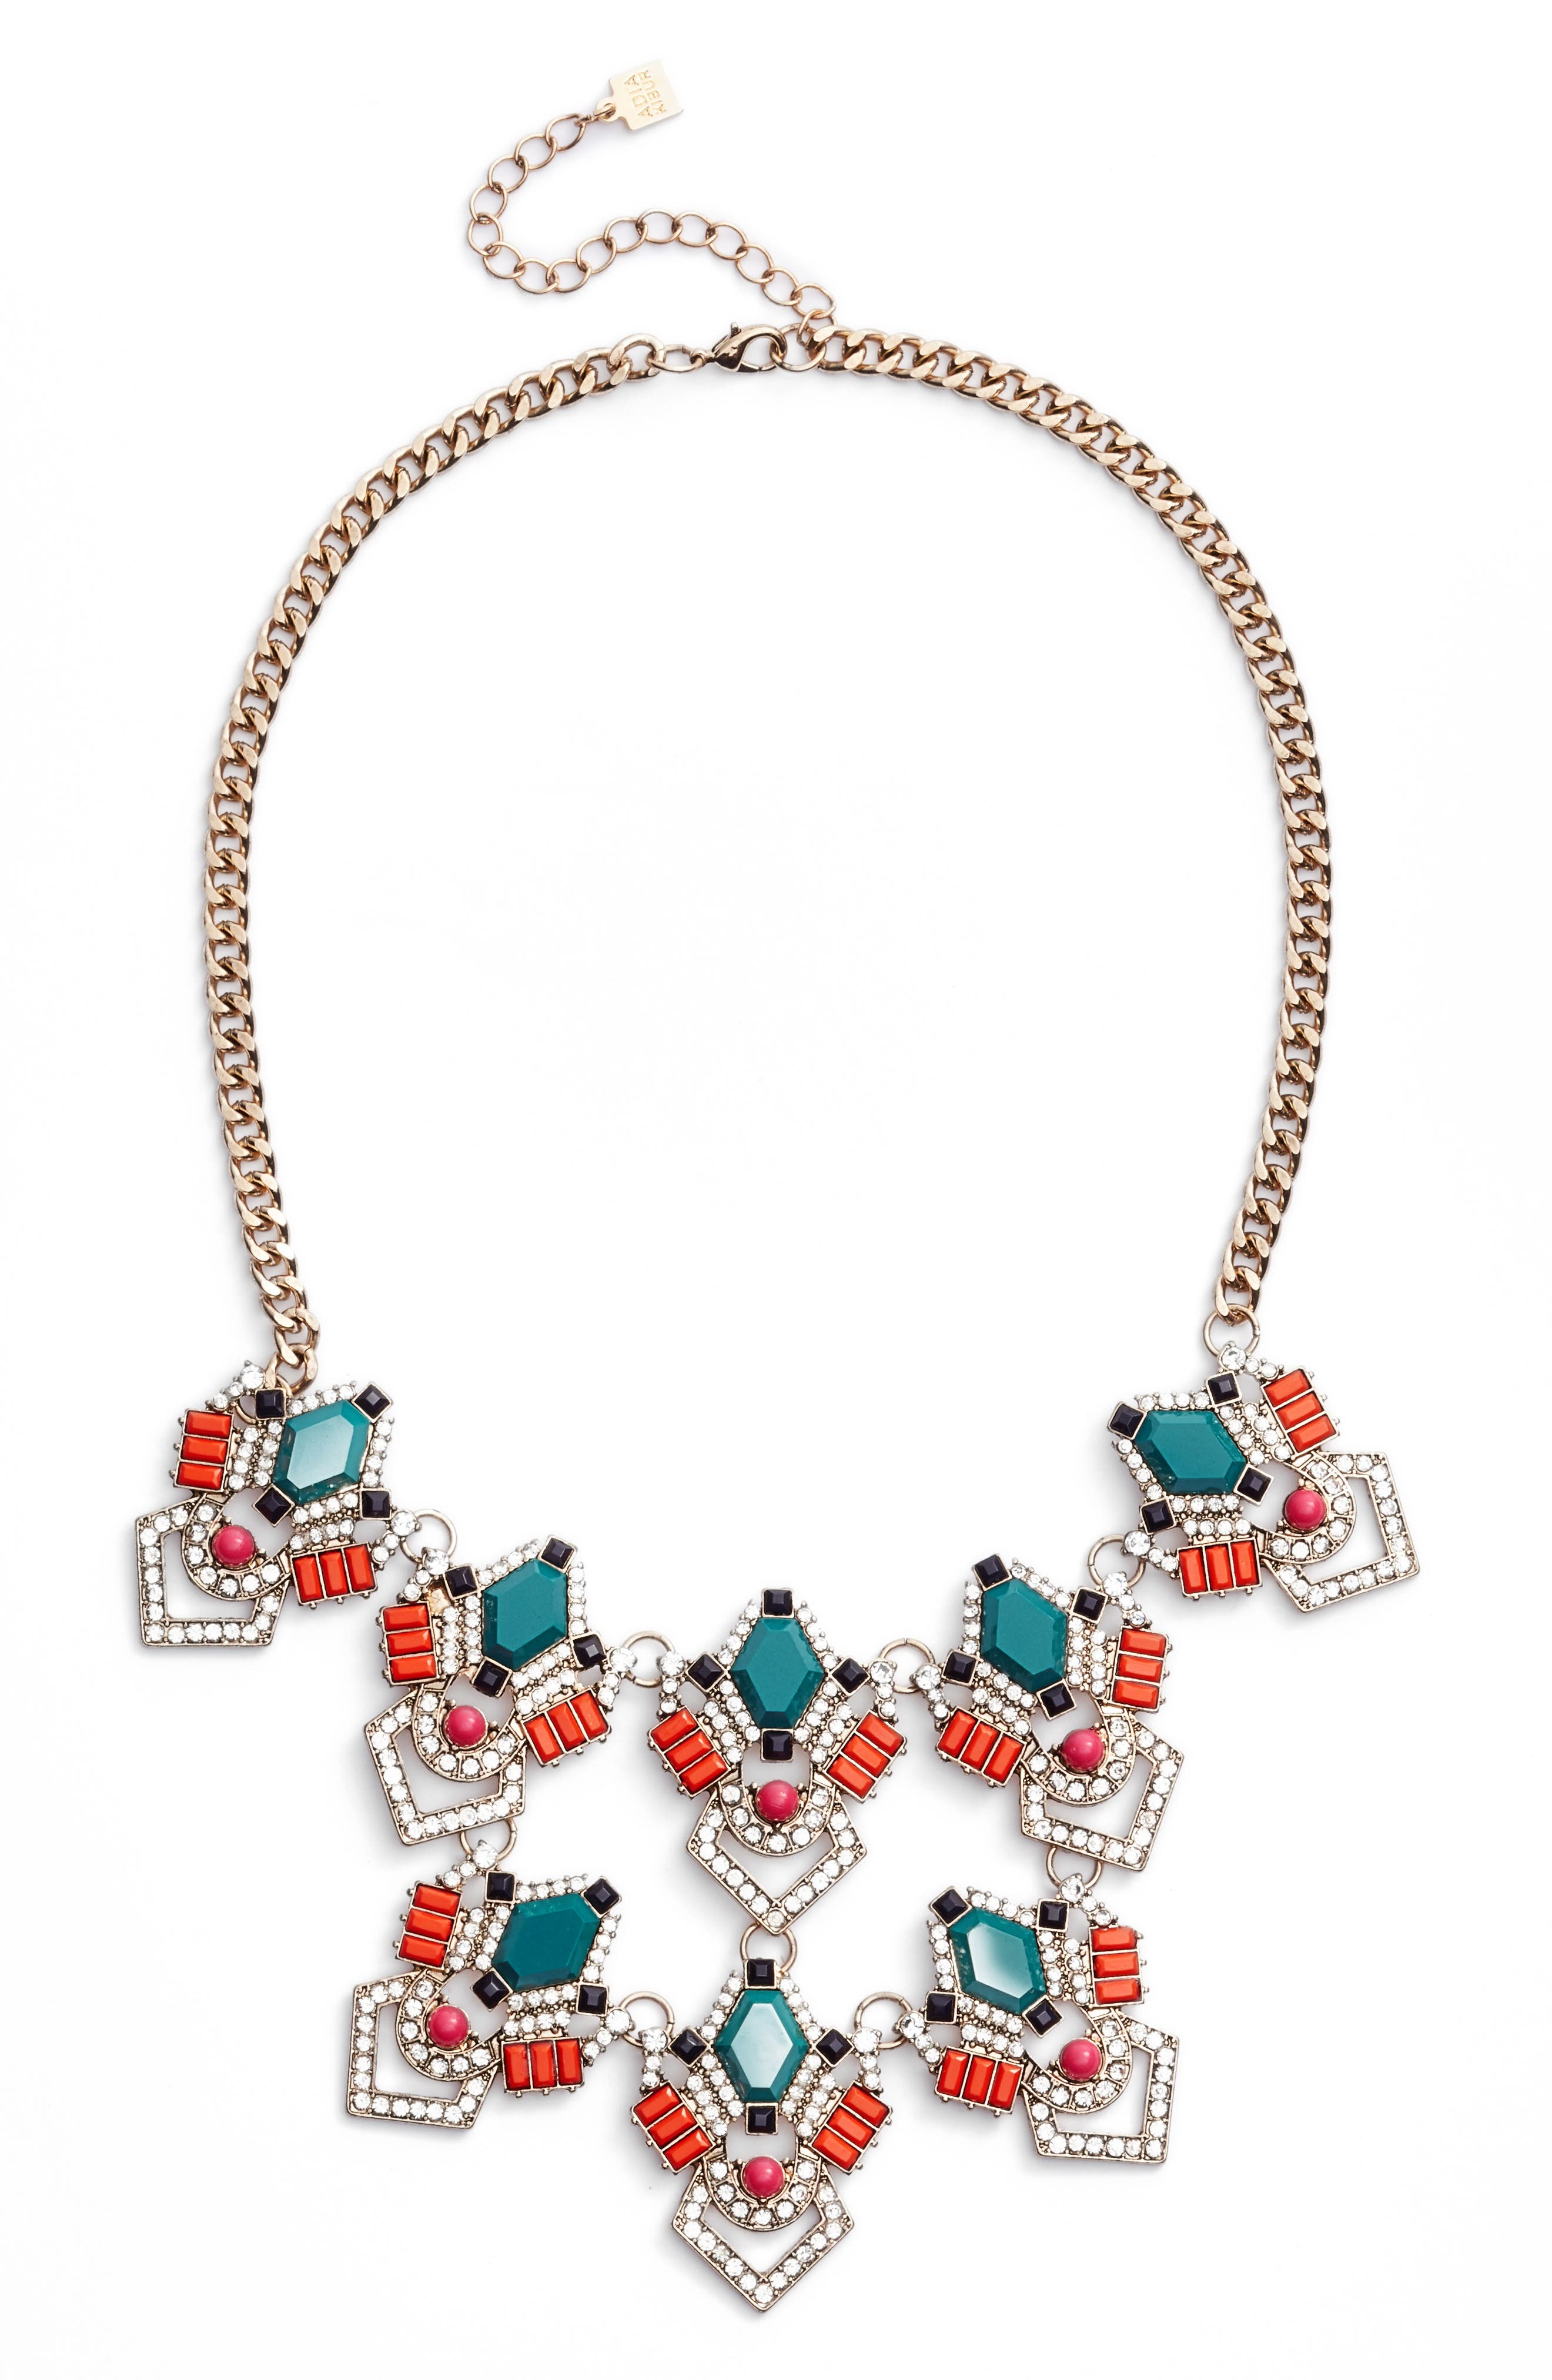 Stone & Crystal Statement Necklace,                             Alternate thumbnail 2, color,                             430